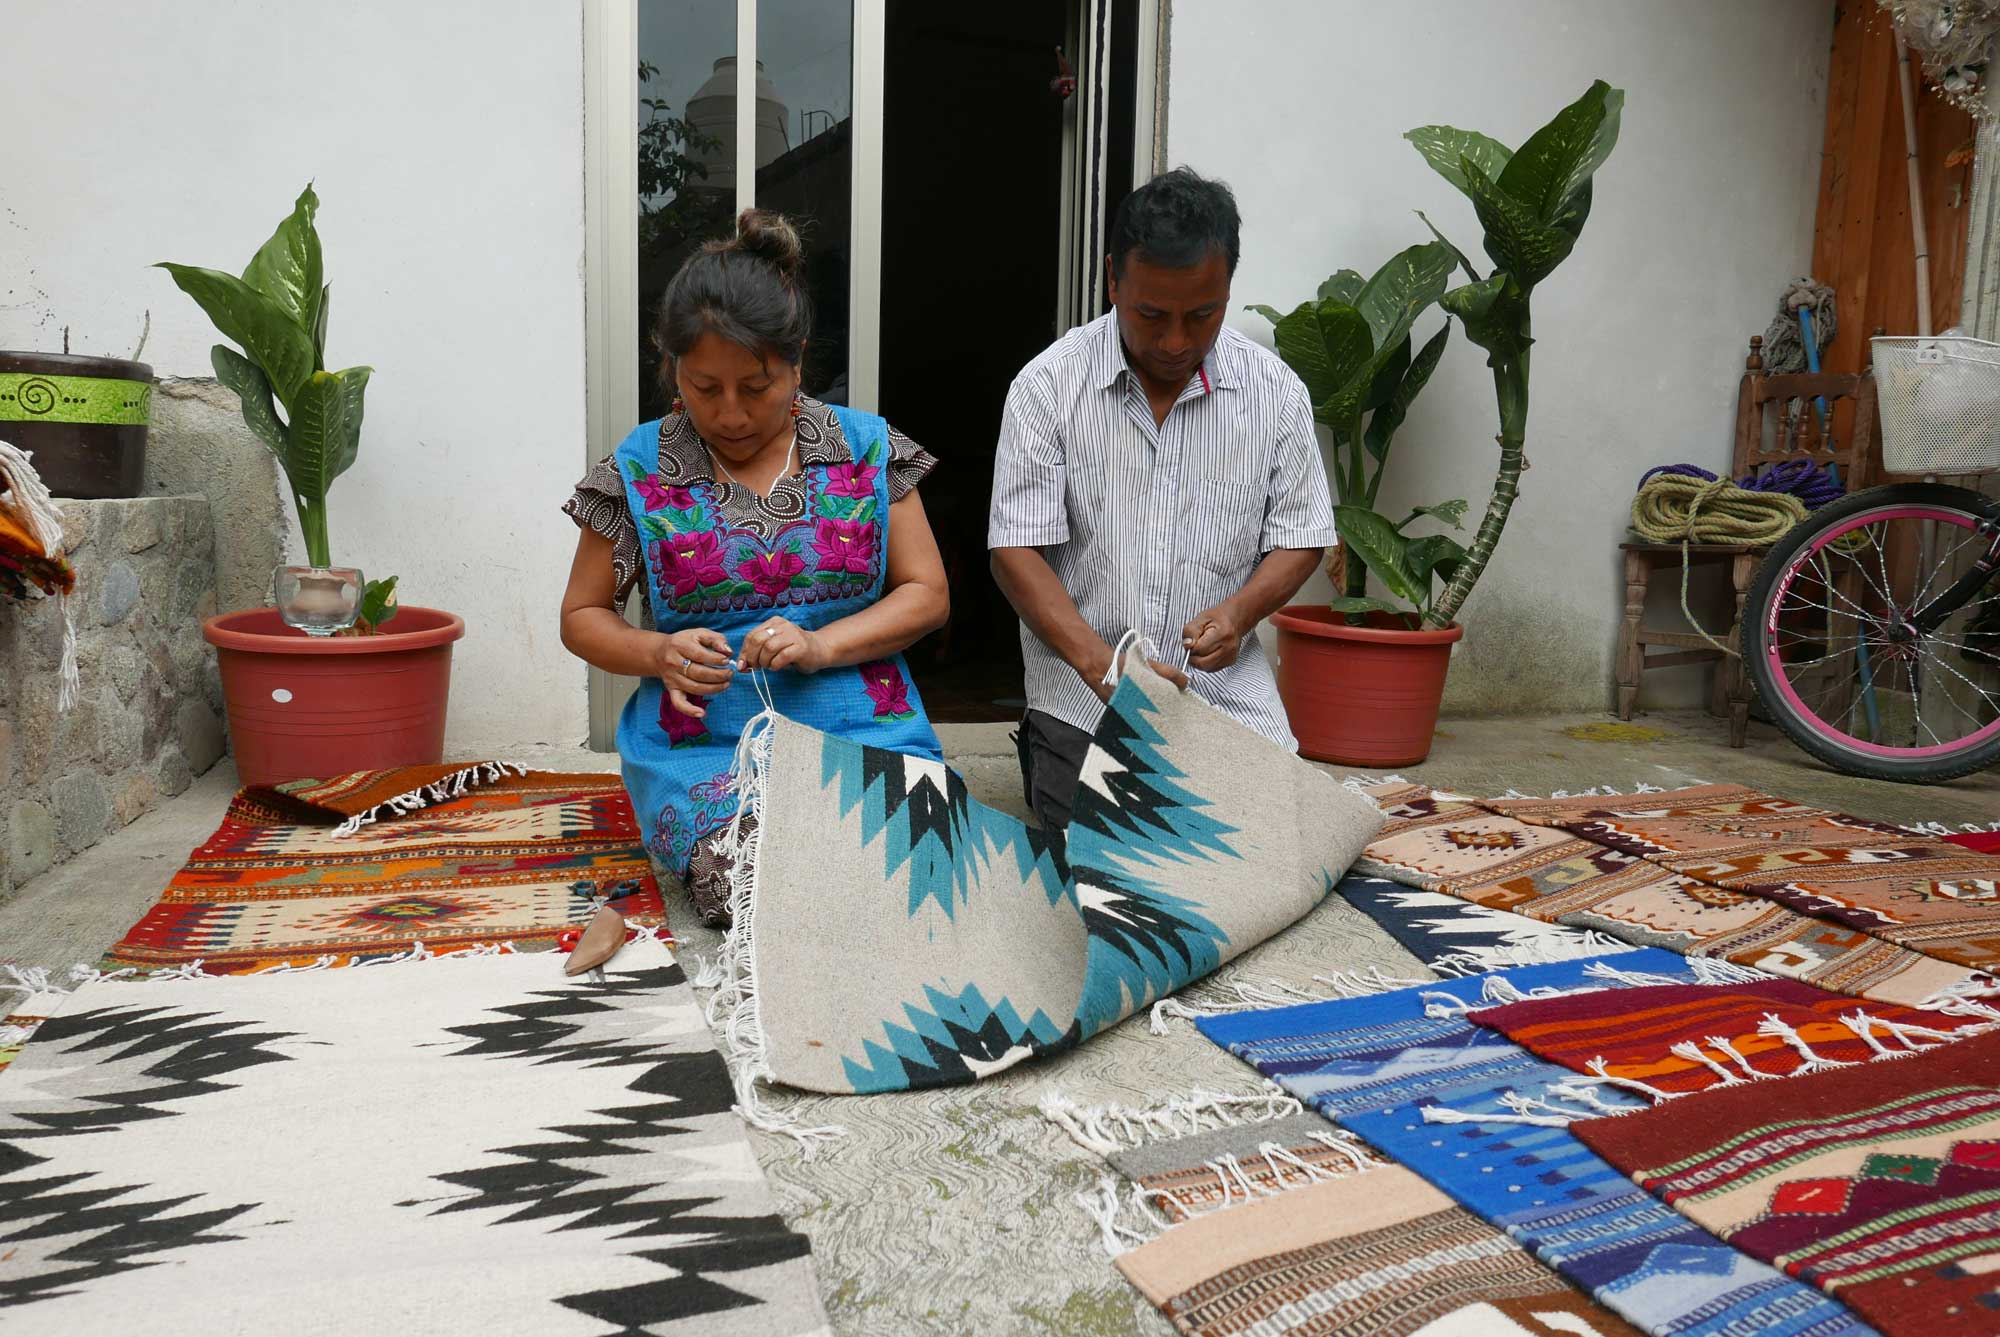 Artisan Weaving Mexican Zapotec Rugs in Teotitlan de Valle Mexico